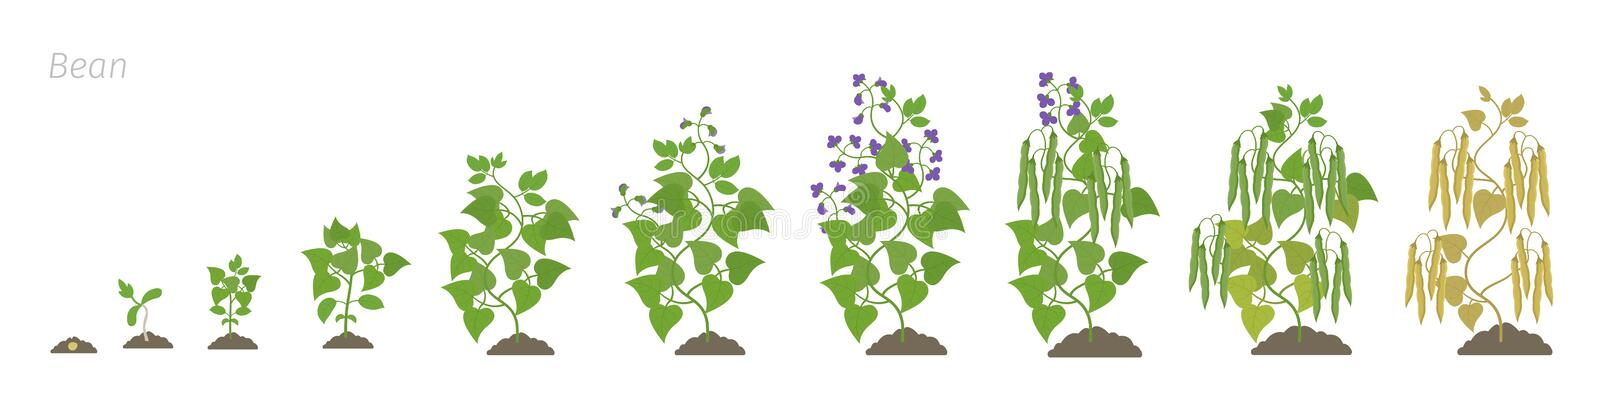 Growth stages of bean plant. Bean family Fabaceae phases set ripening period. Life cycle, animation progression. Growth stages of bean plant. Bean family vector illustration